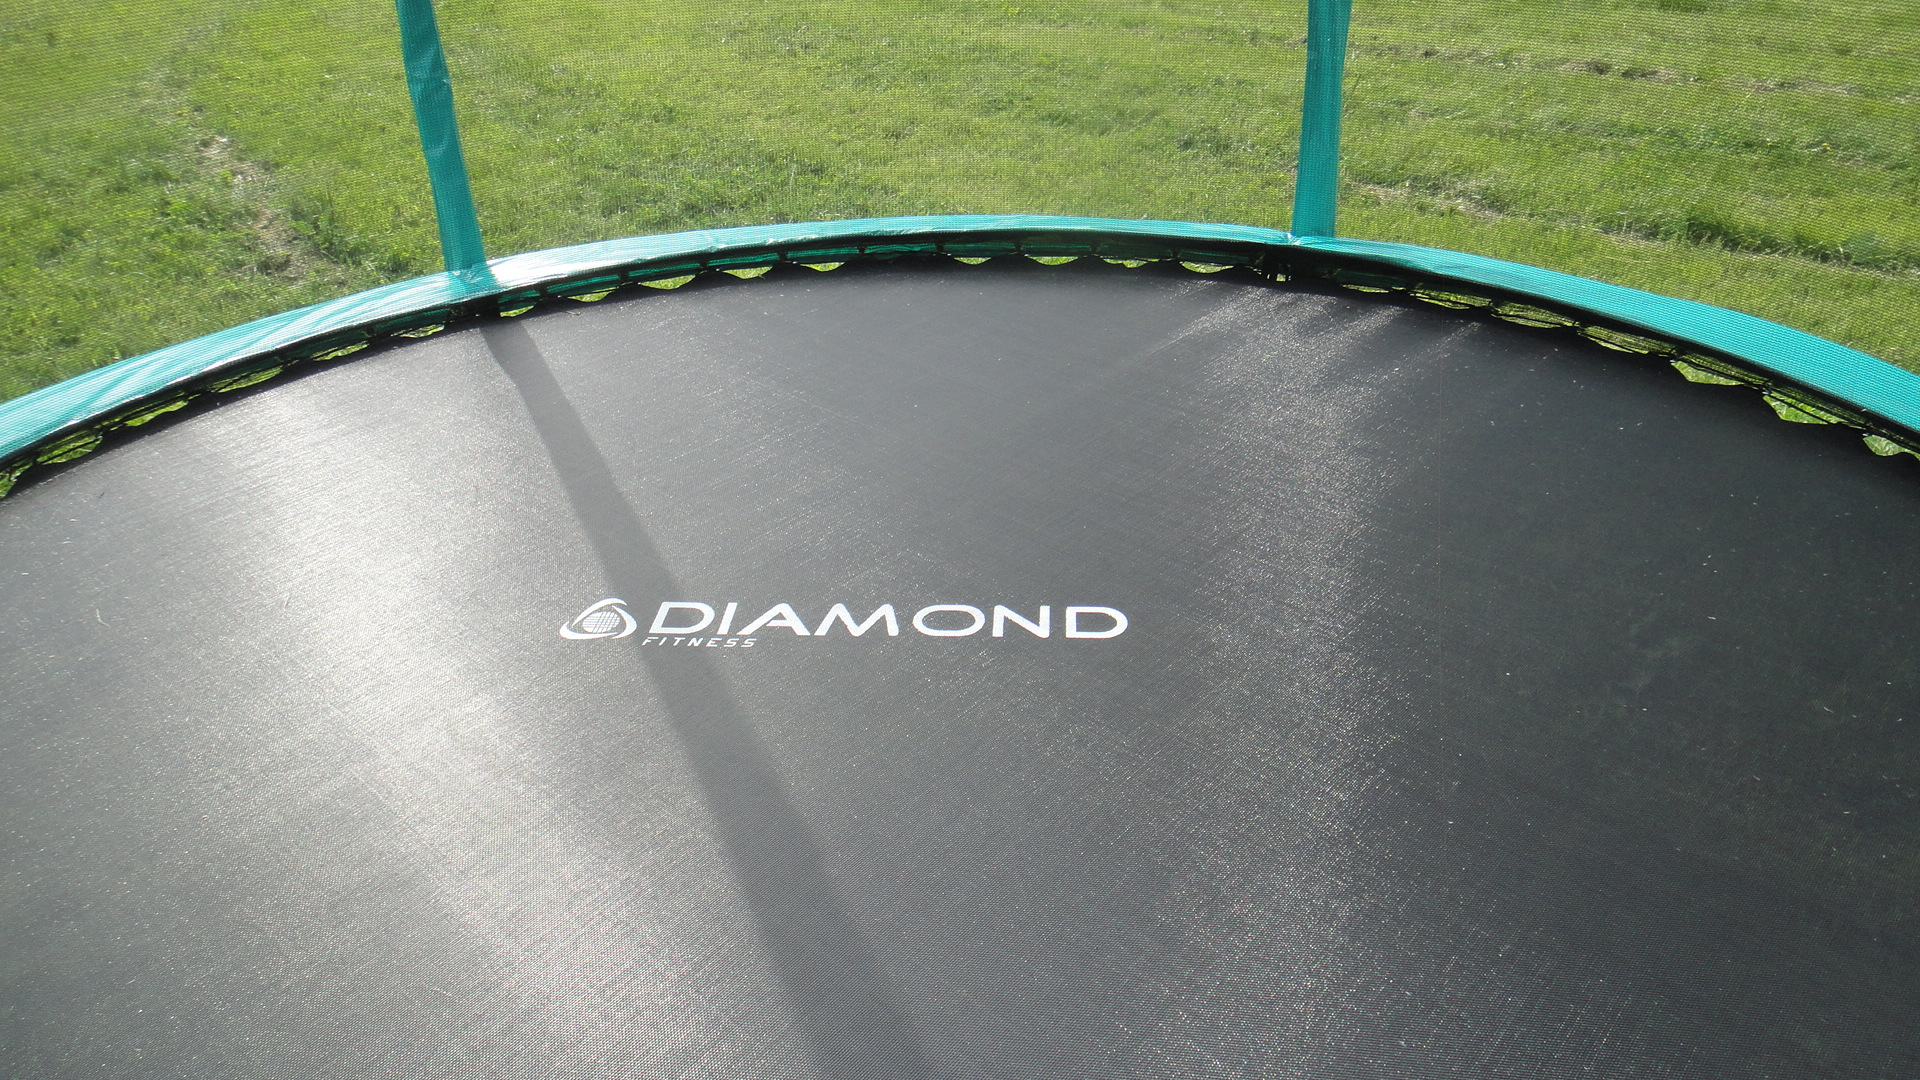 Батут Diamond Fitness Black Edition 10 ft. (305 см) комплект